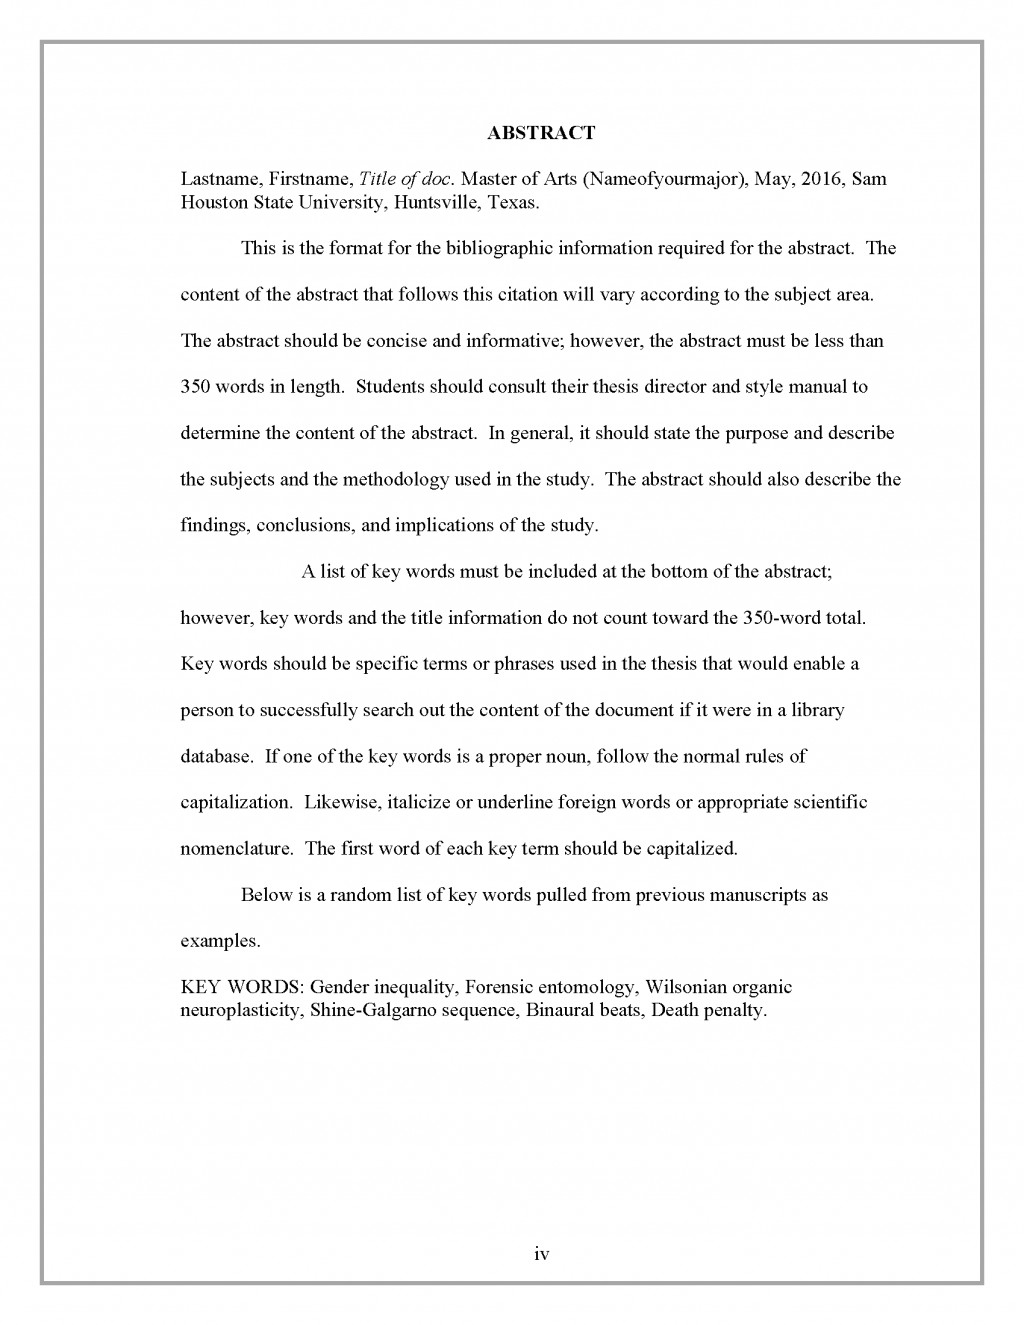 001 Business Abstract Example Border Research Wonderful Proposal Plan Large